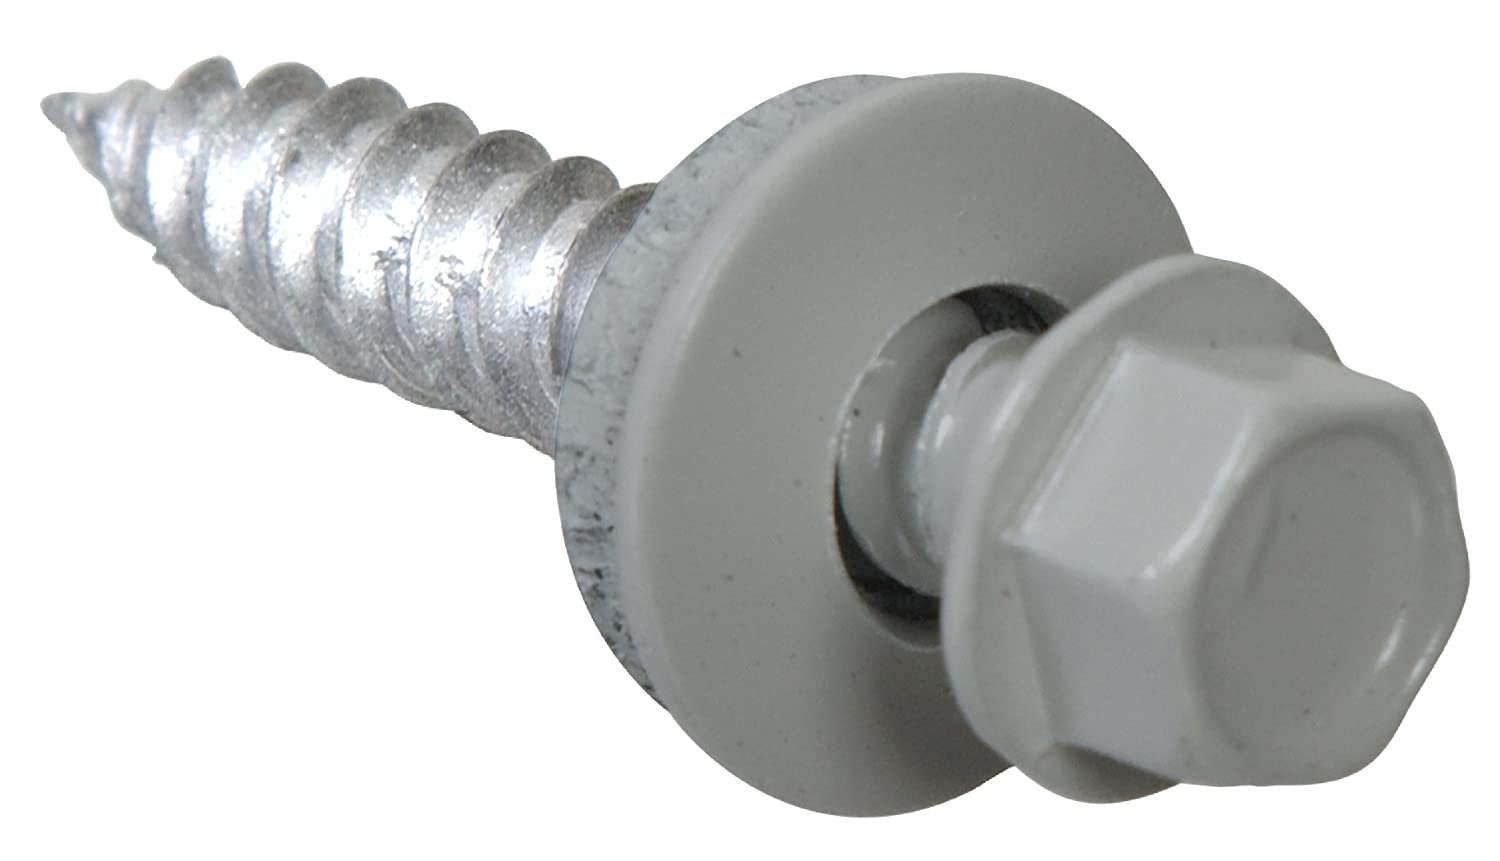 The Hillman Group 48279 10 X 2-Inch Hex Washer Head Self-Piercing Screw with Neoprene Washer and Gray Ceramic Coating 350-Pack